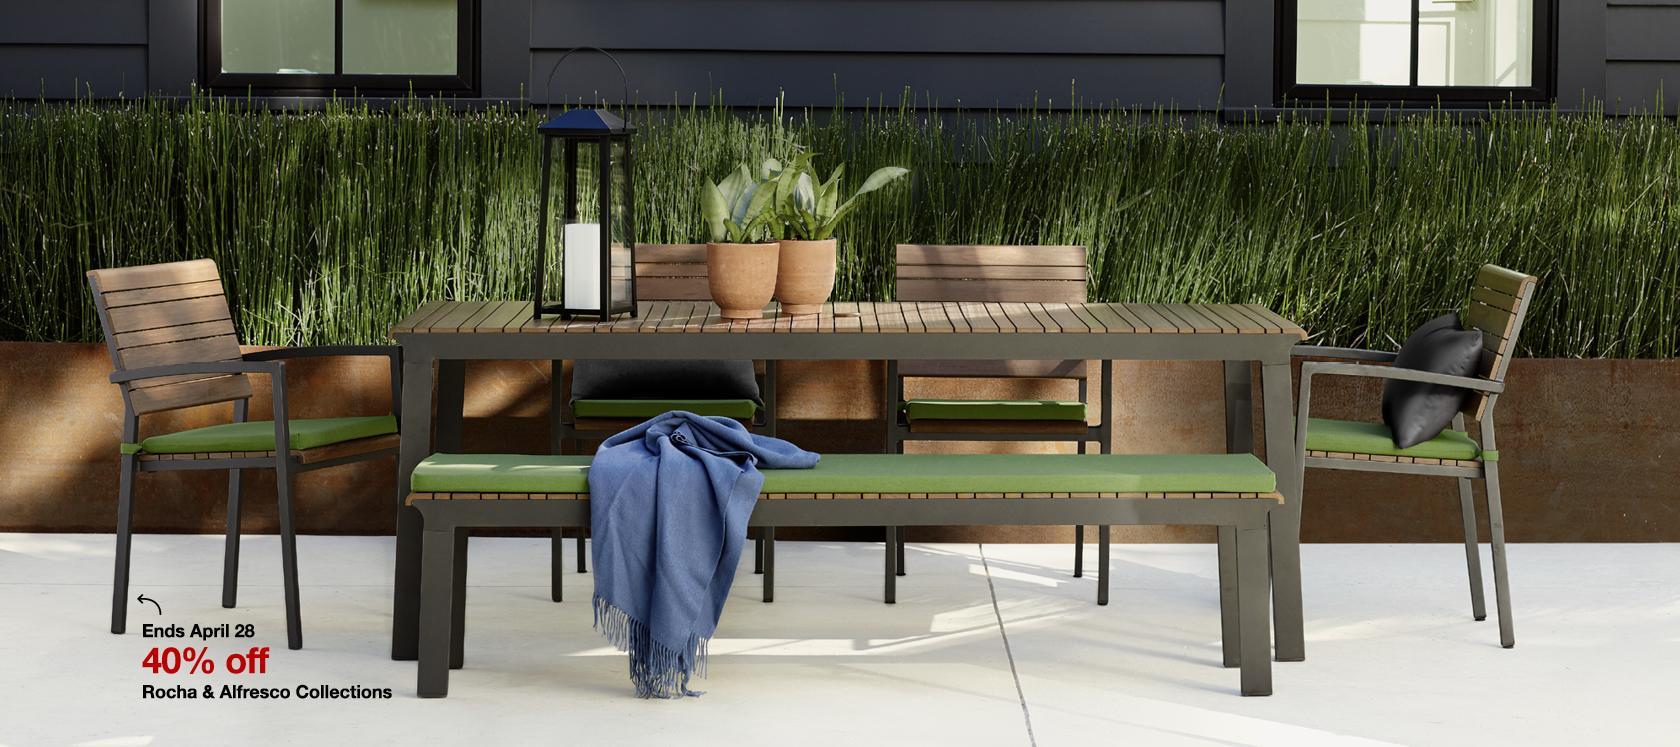 40% off Rocha and Alfresco outdoor collections. Sale ends April 28.